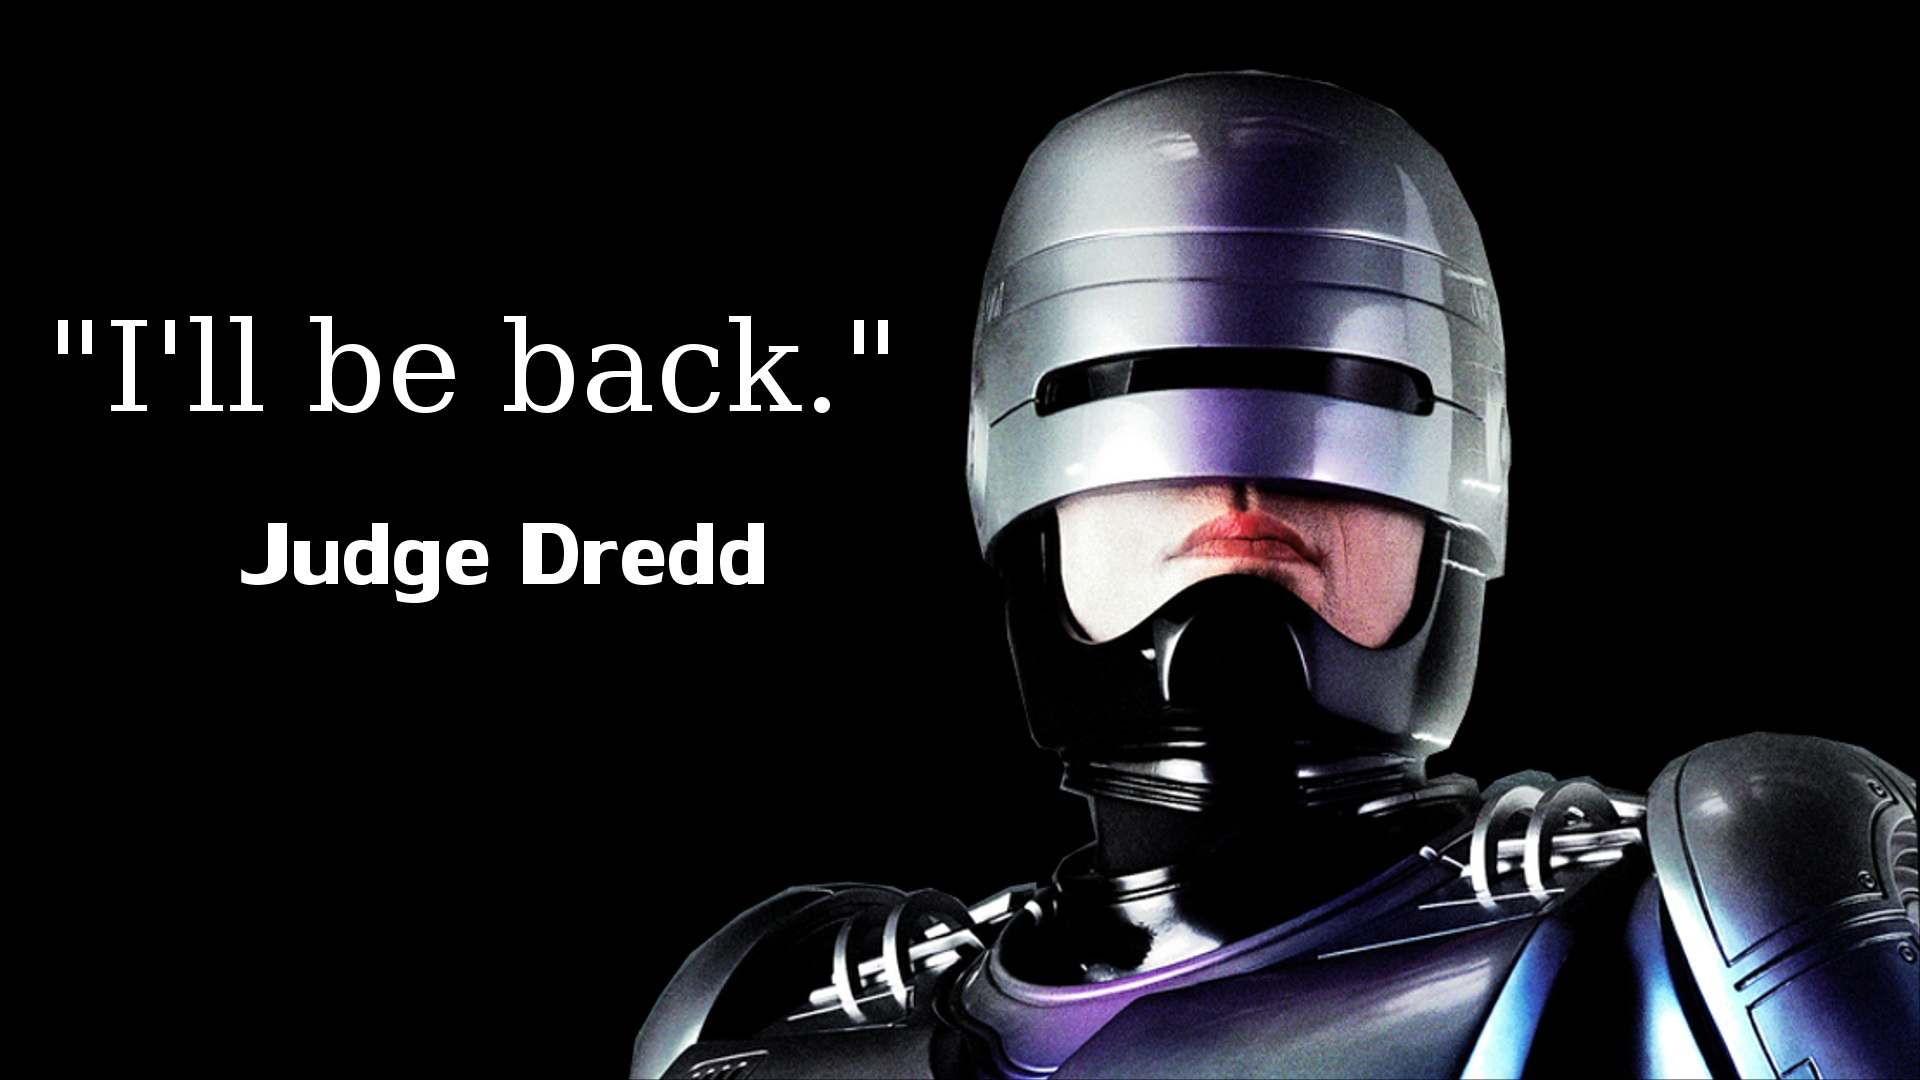 I'll be back - Judge Dredd